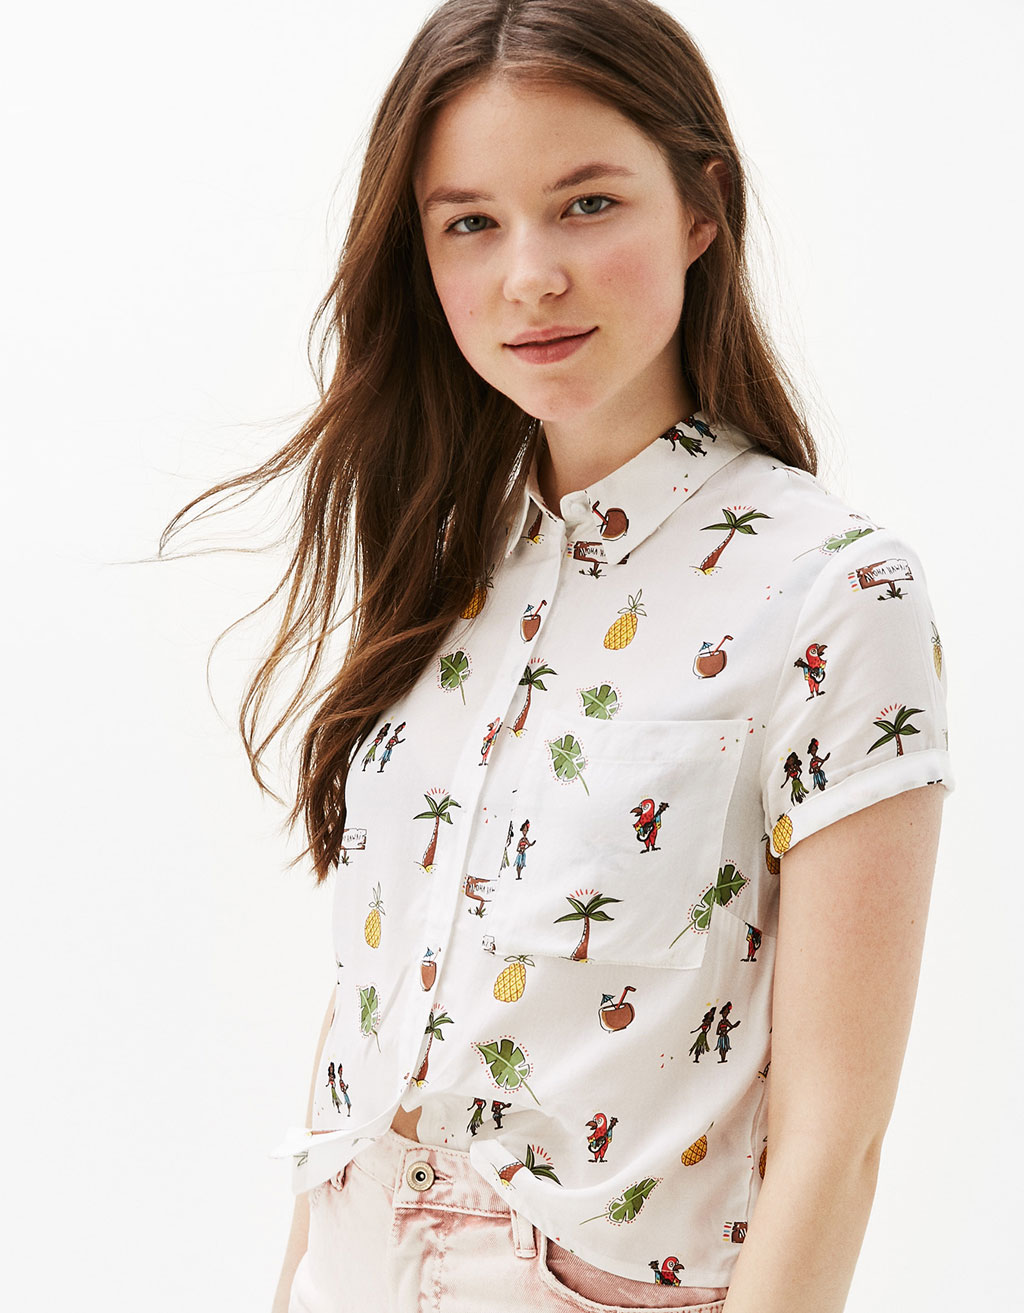 Women's Shirts - Autumn Winter Collection 2017 | Bershka